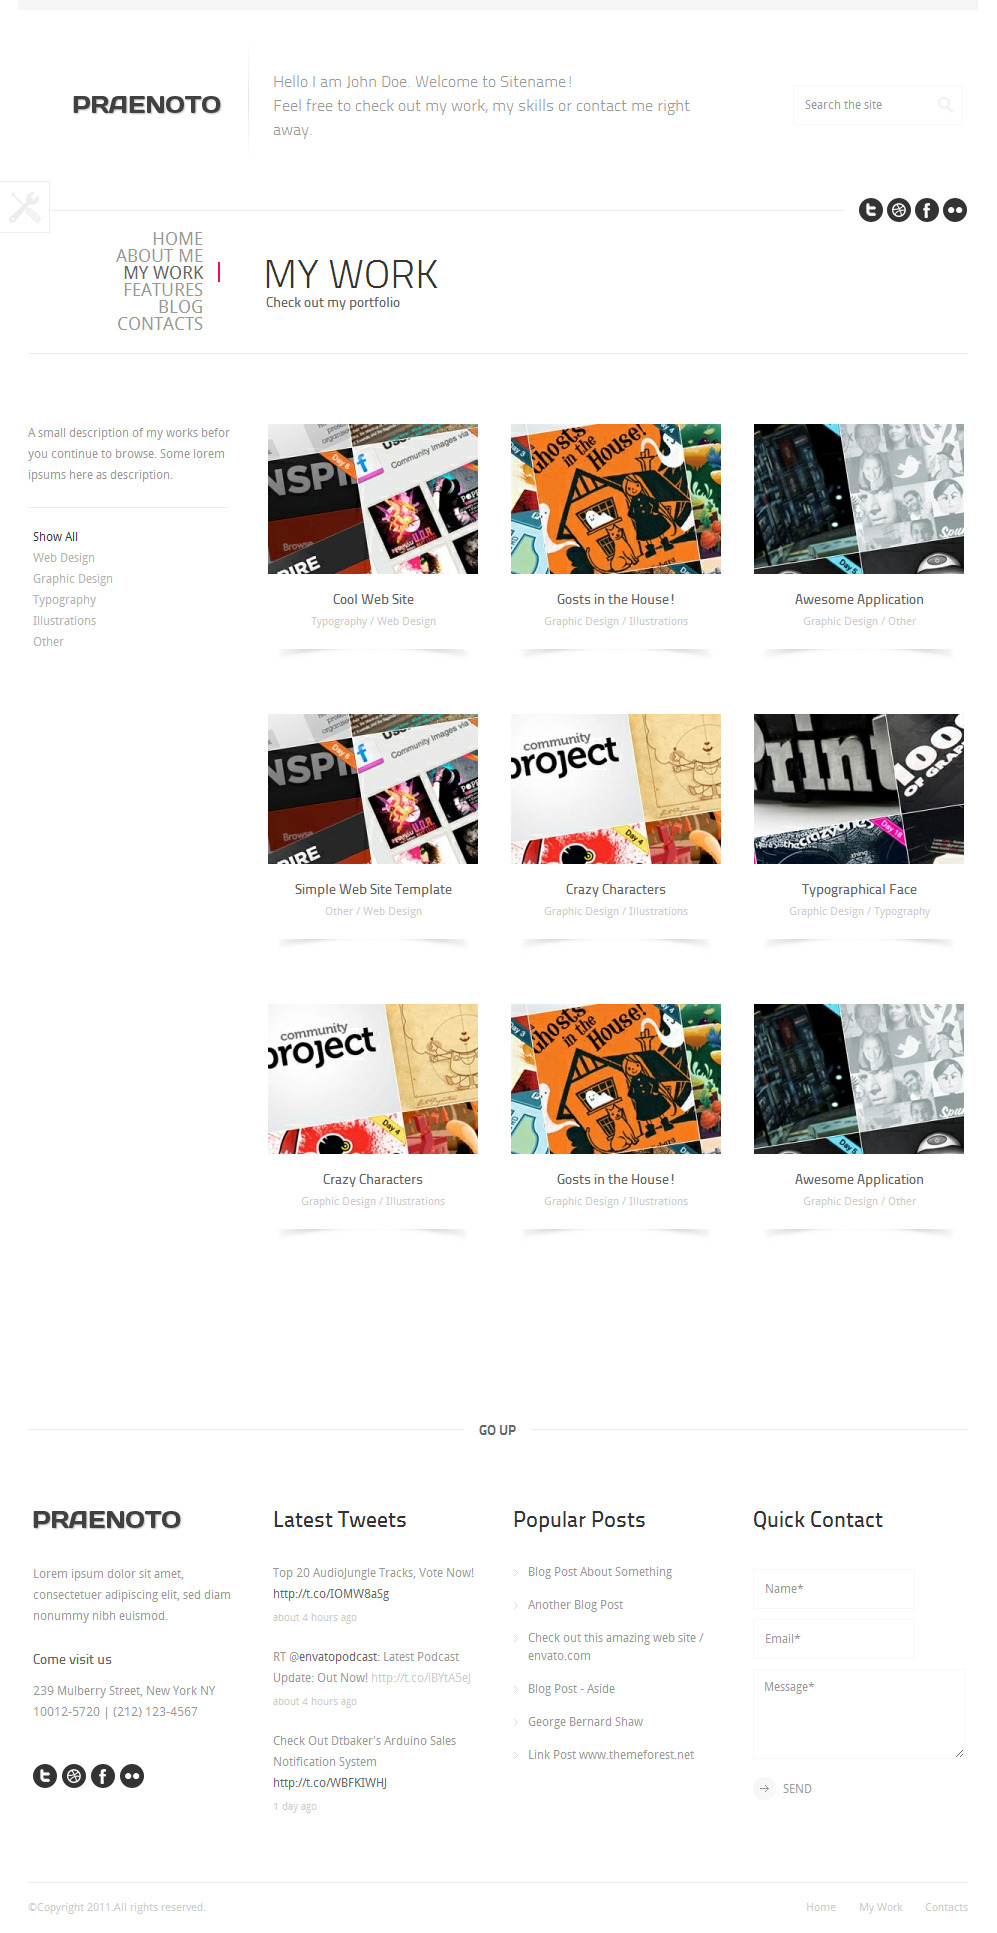 Praenoto - Clean & Minimalist WordPress Theme - Screenshot 4. Gallery page with 3 columns.